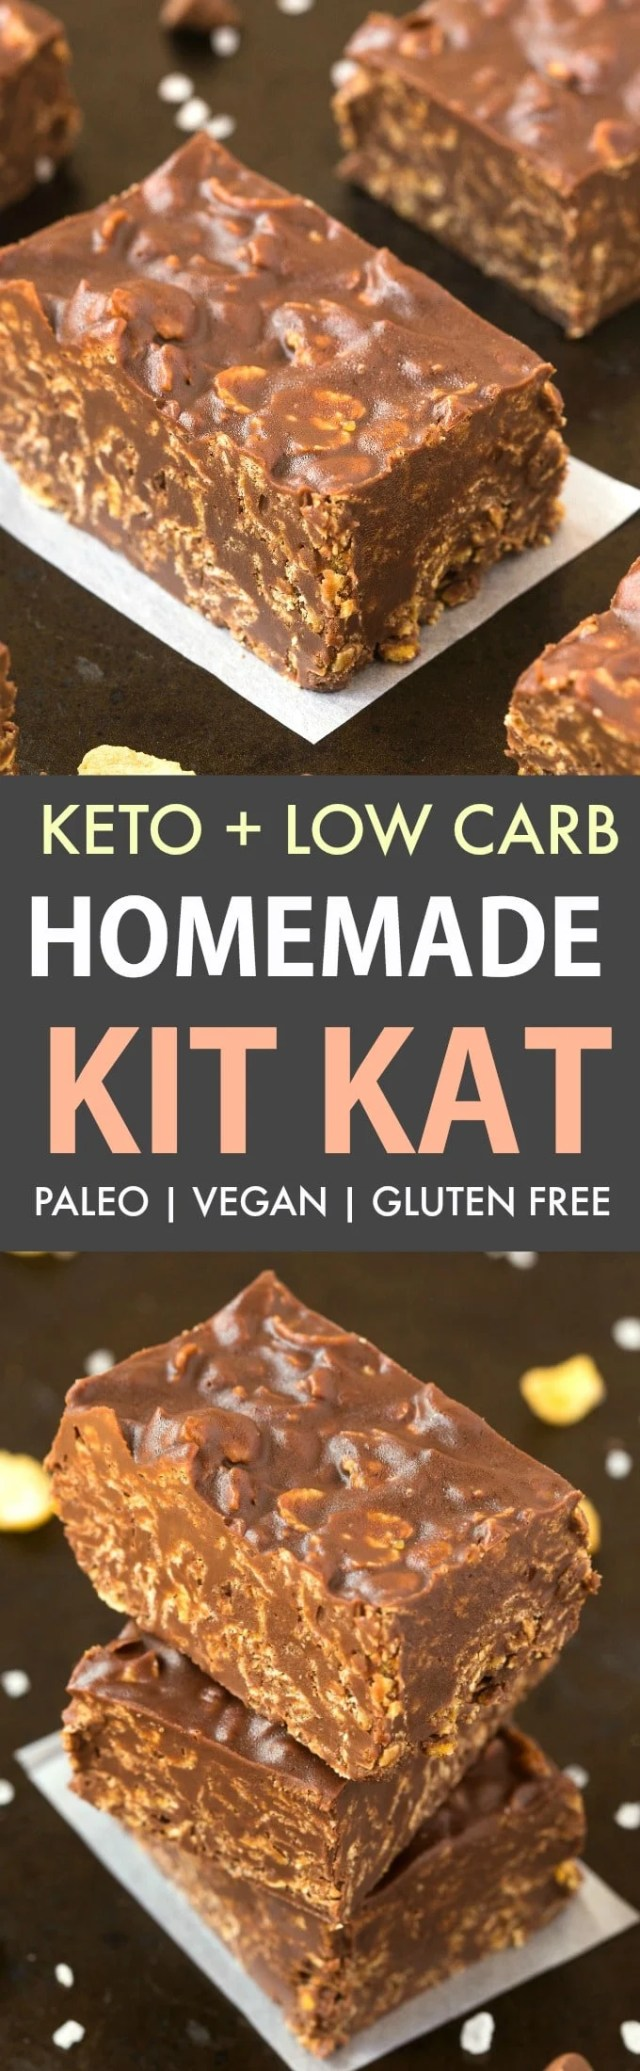 A collage of homemade keto kit kat bars- Chocolate bars loaded with crispy cereal, nuts and seeds